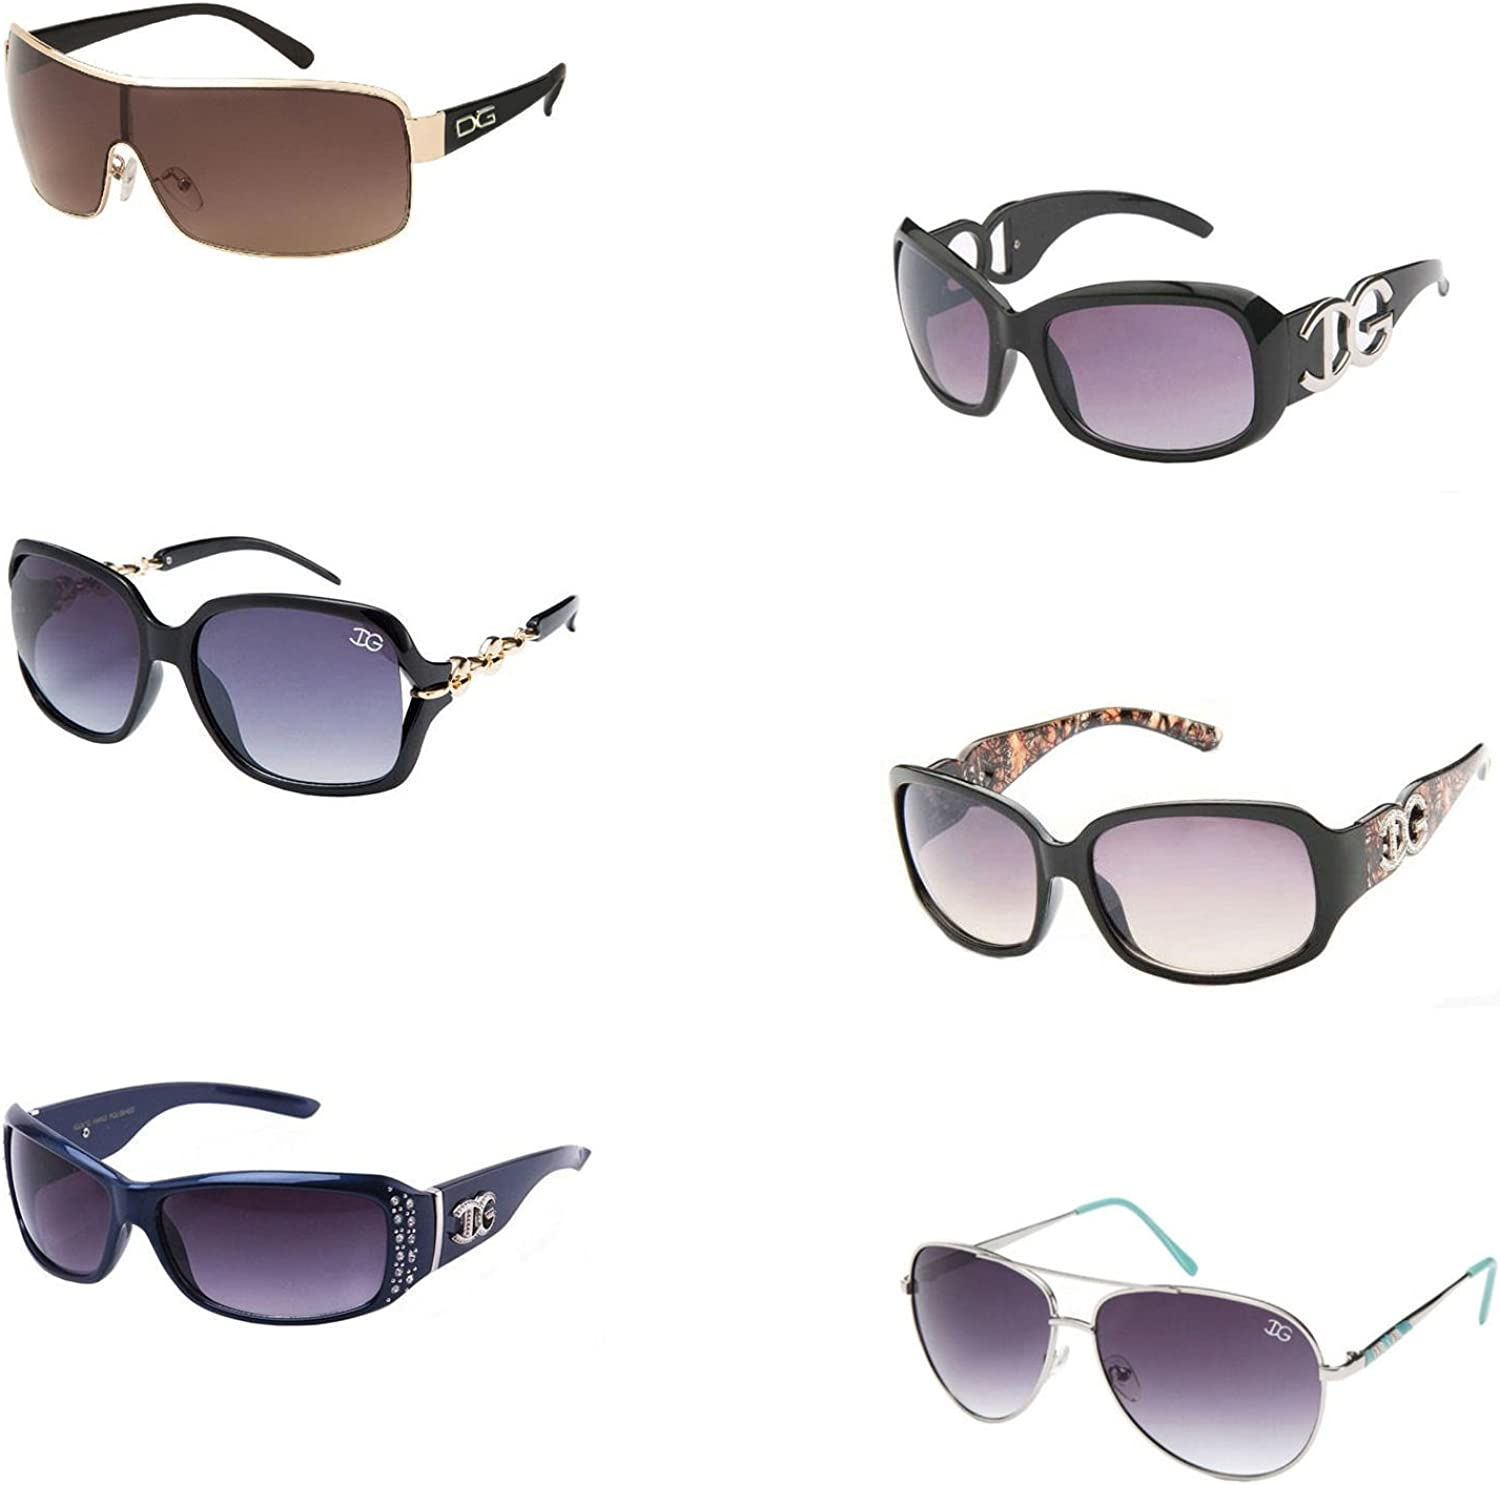 Amazon Com 6 Pair Of High Fashion Sunglasses With Soft Pouches Clothing